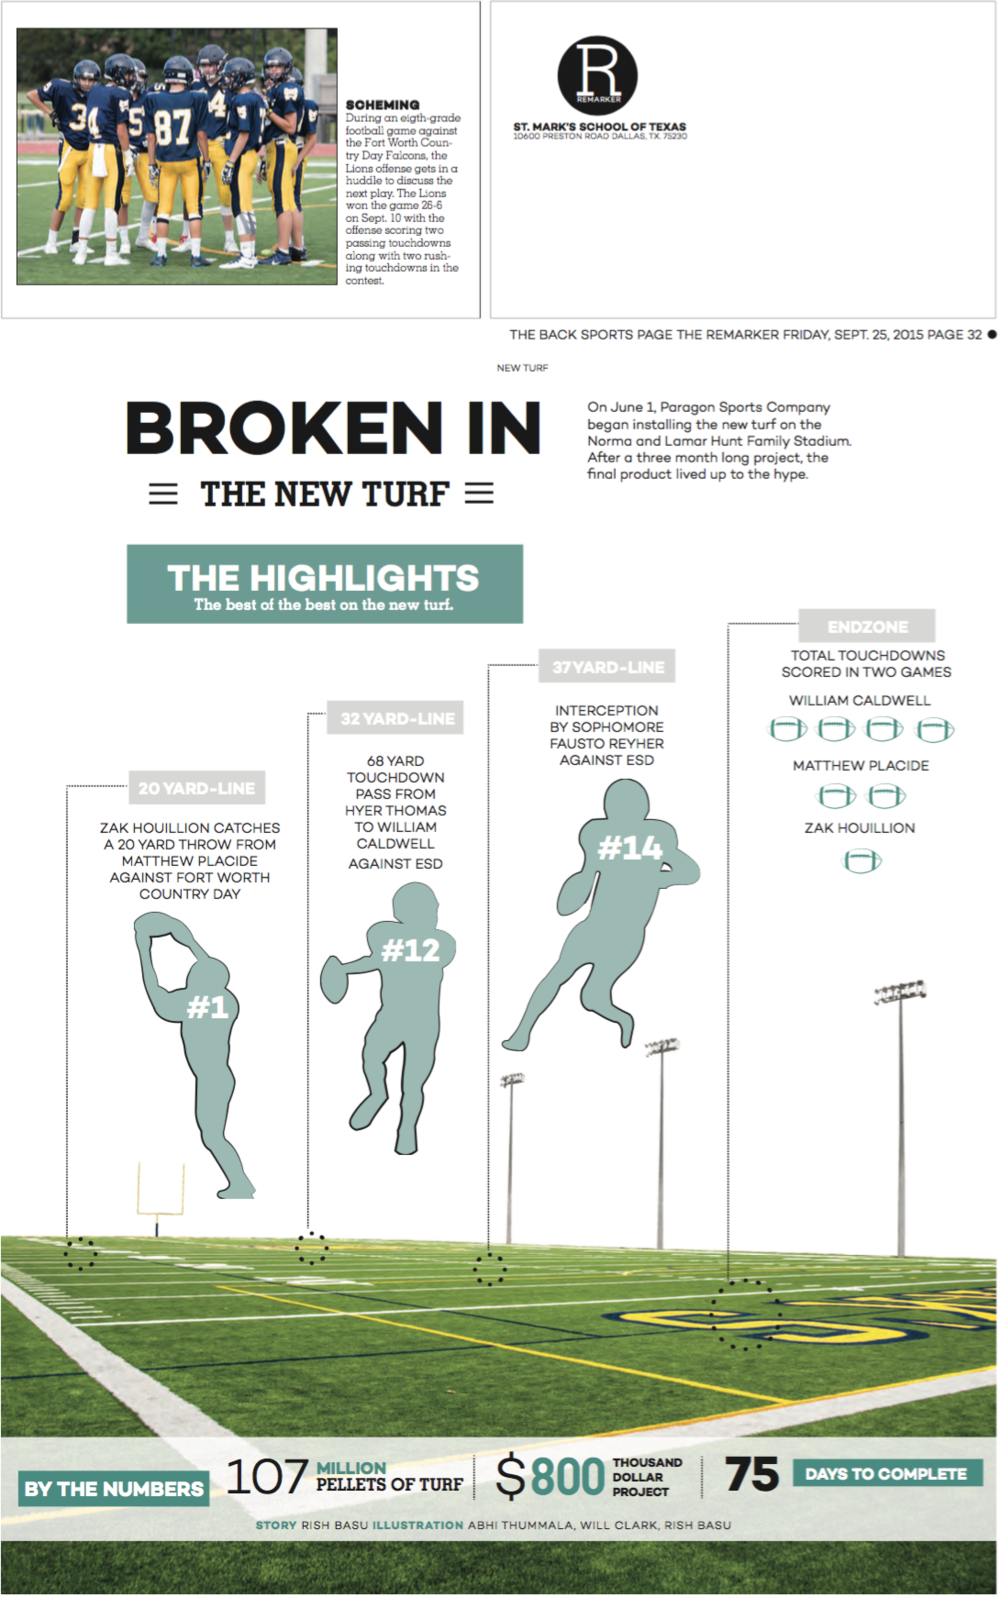 "When our school constructed a new turf field, I saw an opportunity for a backpage idea. After the first two football games, I compiled all the big plays and used a cutout of the field to convey how the new turf was ""broken in."" I also decided to include an infographic on the production of the new turf near the bottom of the page."